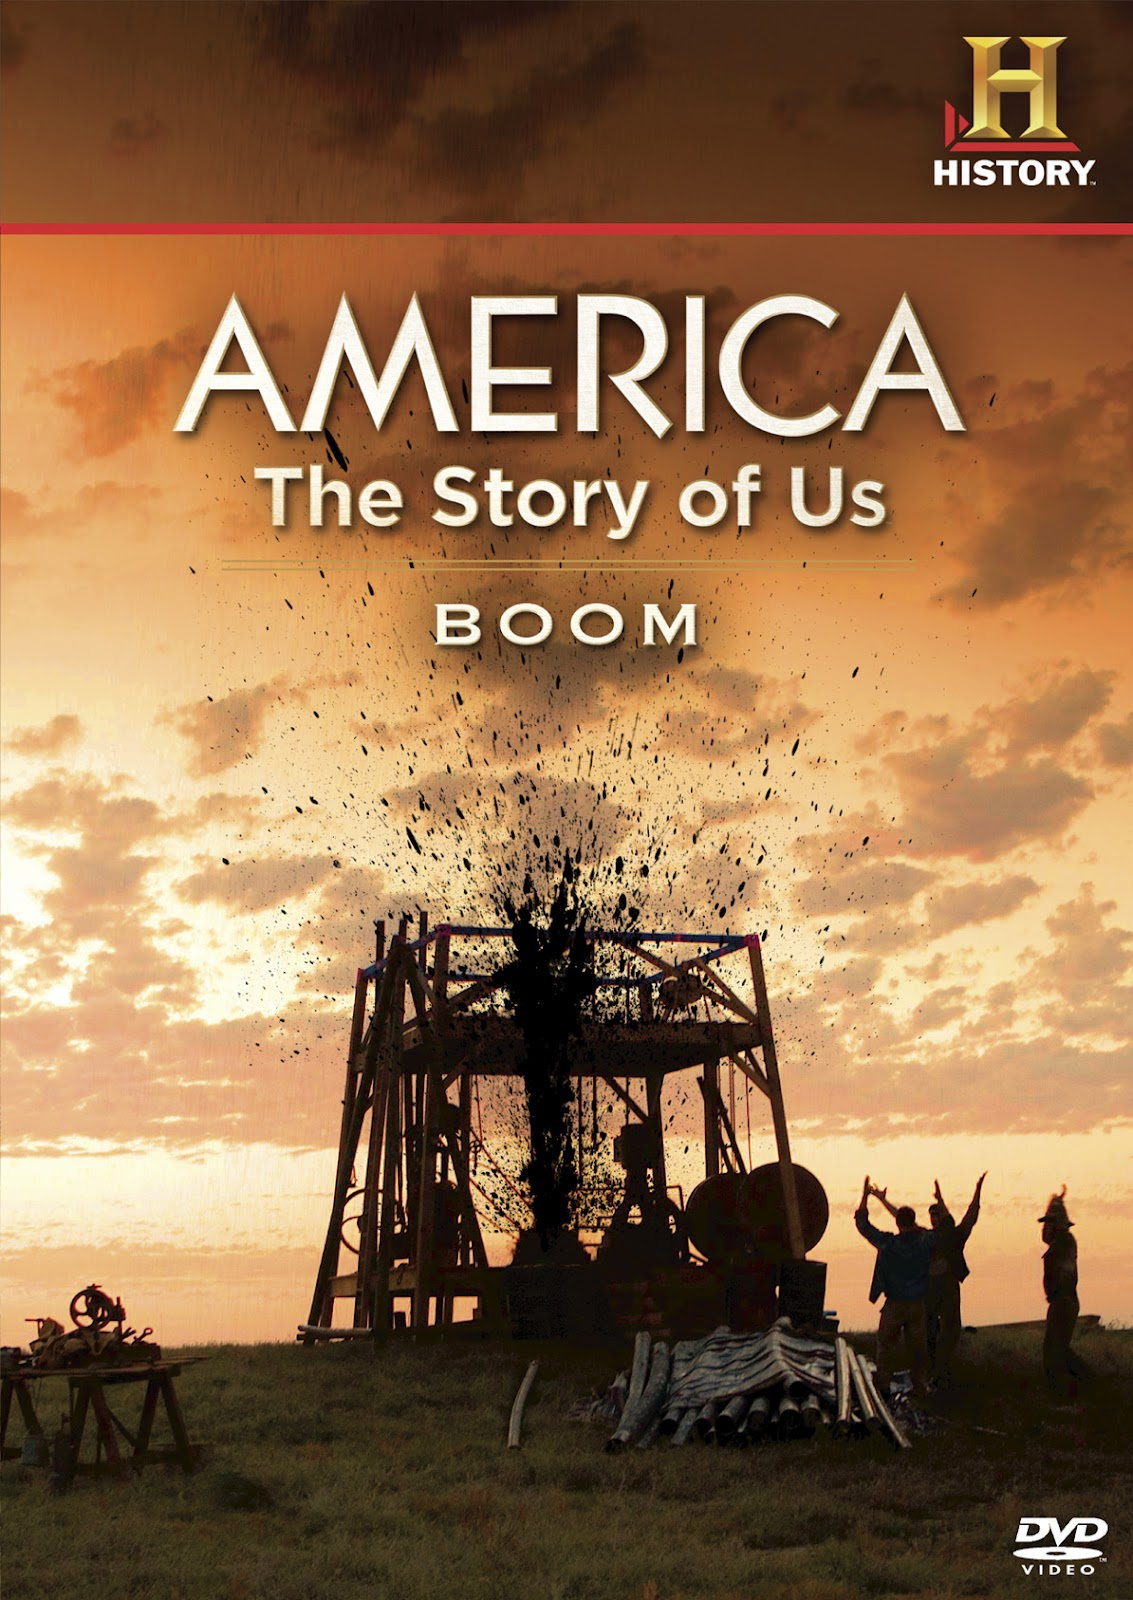 America The Story Of Us Episodes 8 Boom And 9 Bust